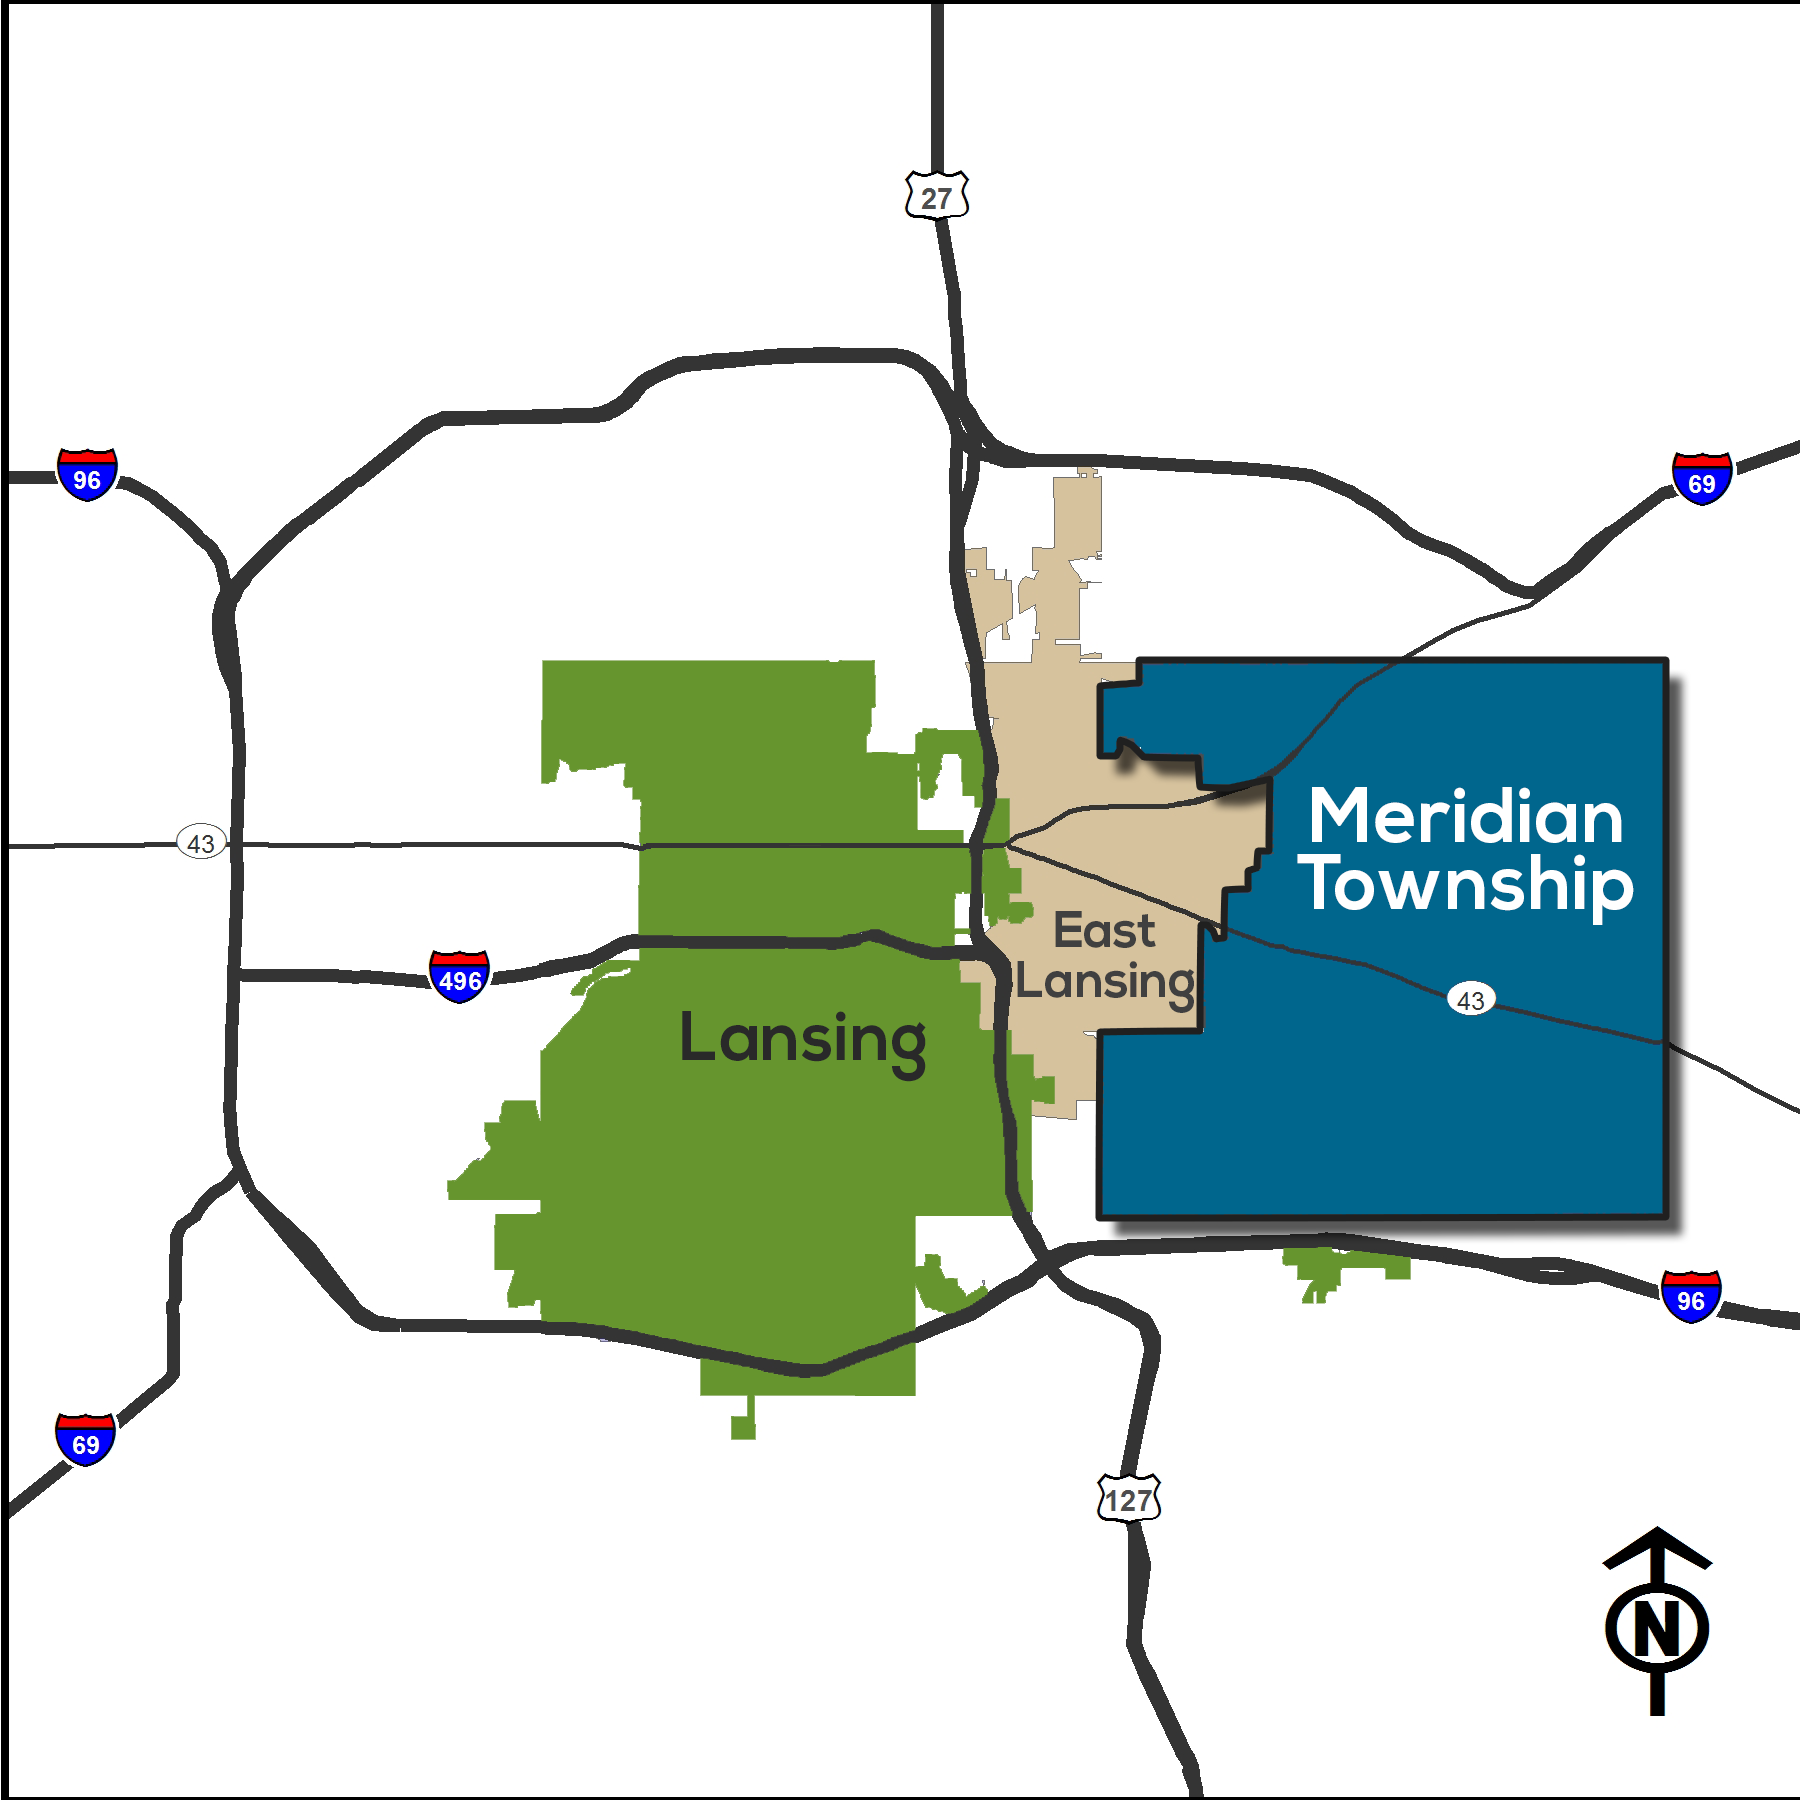 Meridian Township regional map